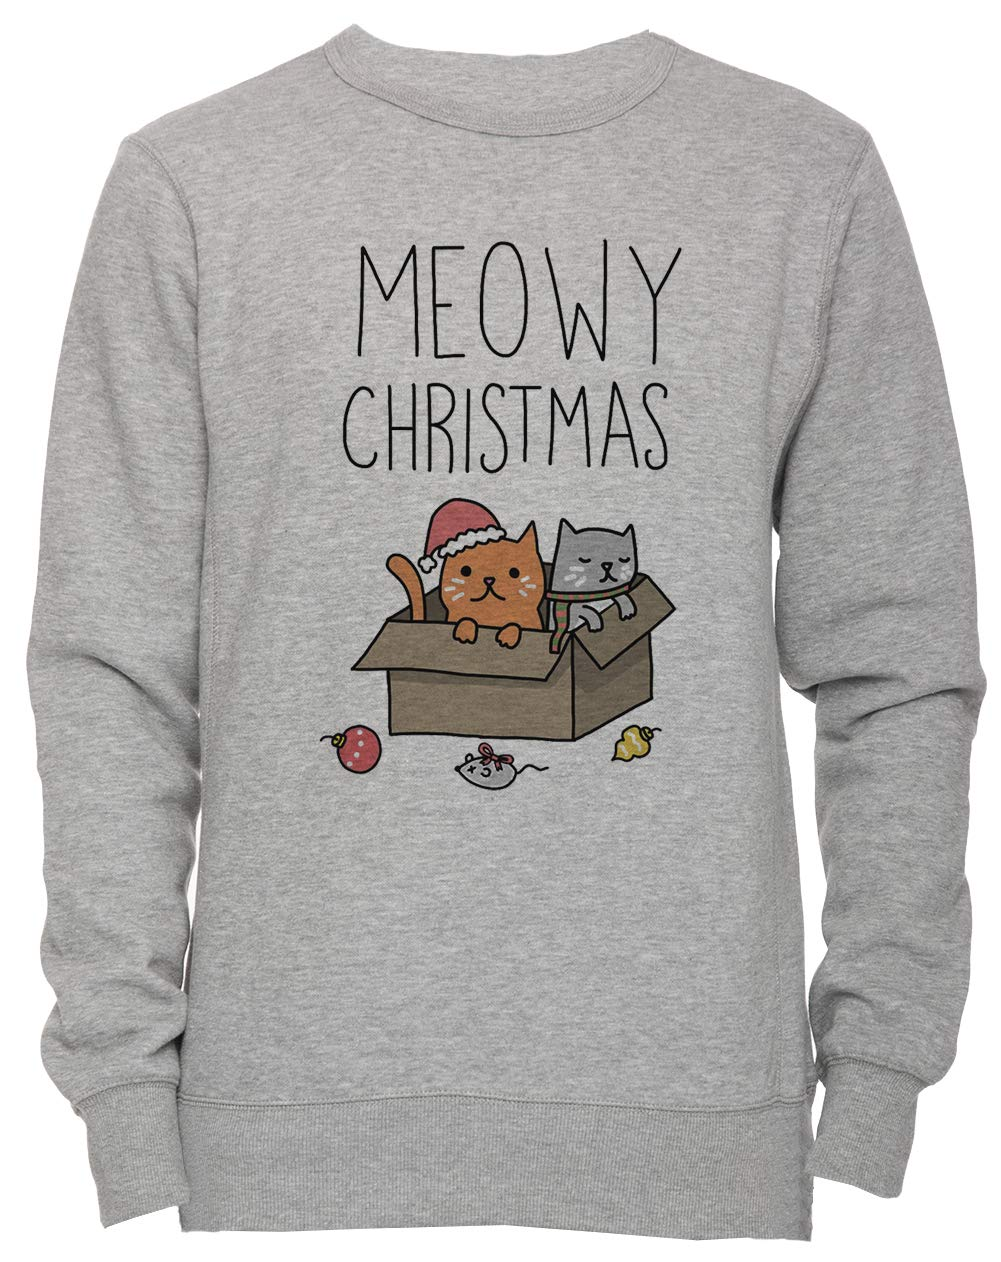 678eddc517 Meowy Christmas Cat Holiday Pun Unisex Men's Women's Jumper Sweatshirt  Pullover Grey